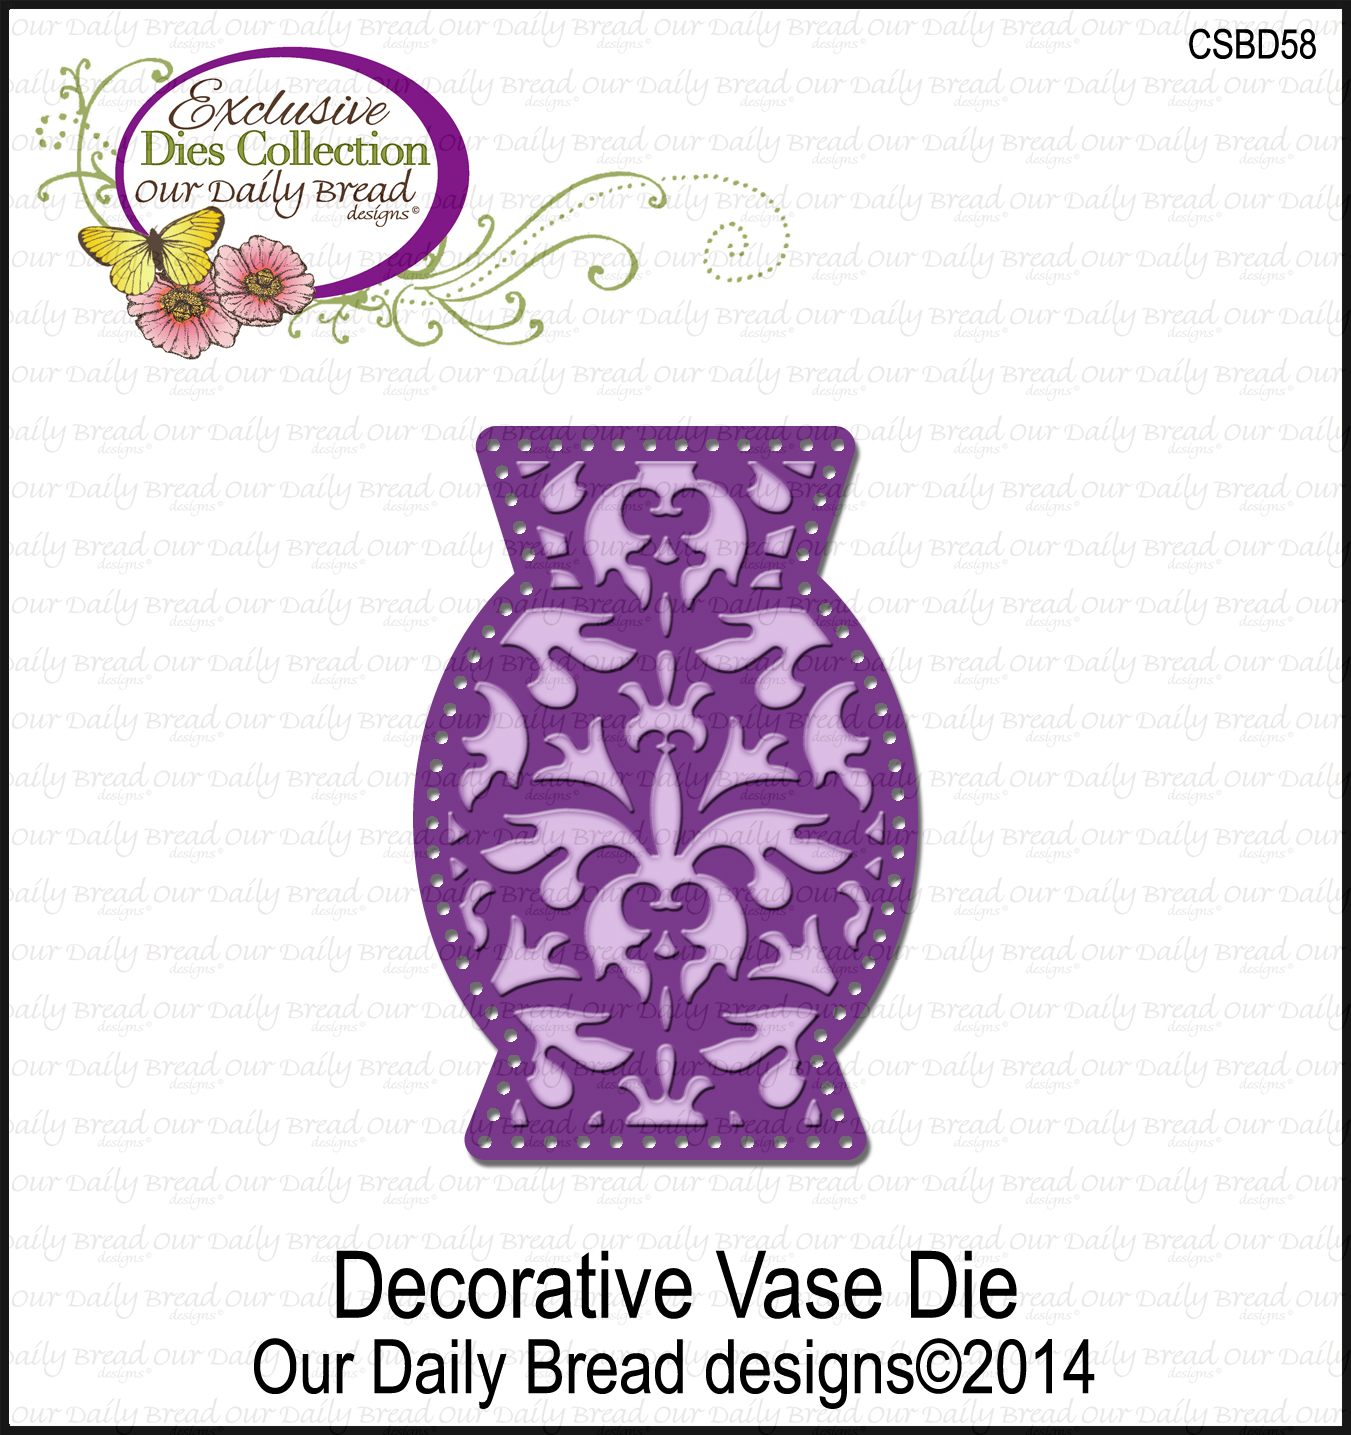 Our Daily Bread Designs Custom Decorative Vase Die